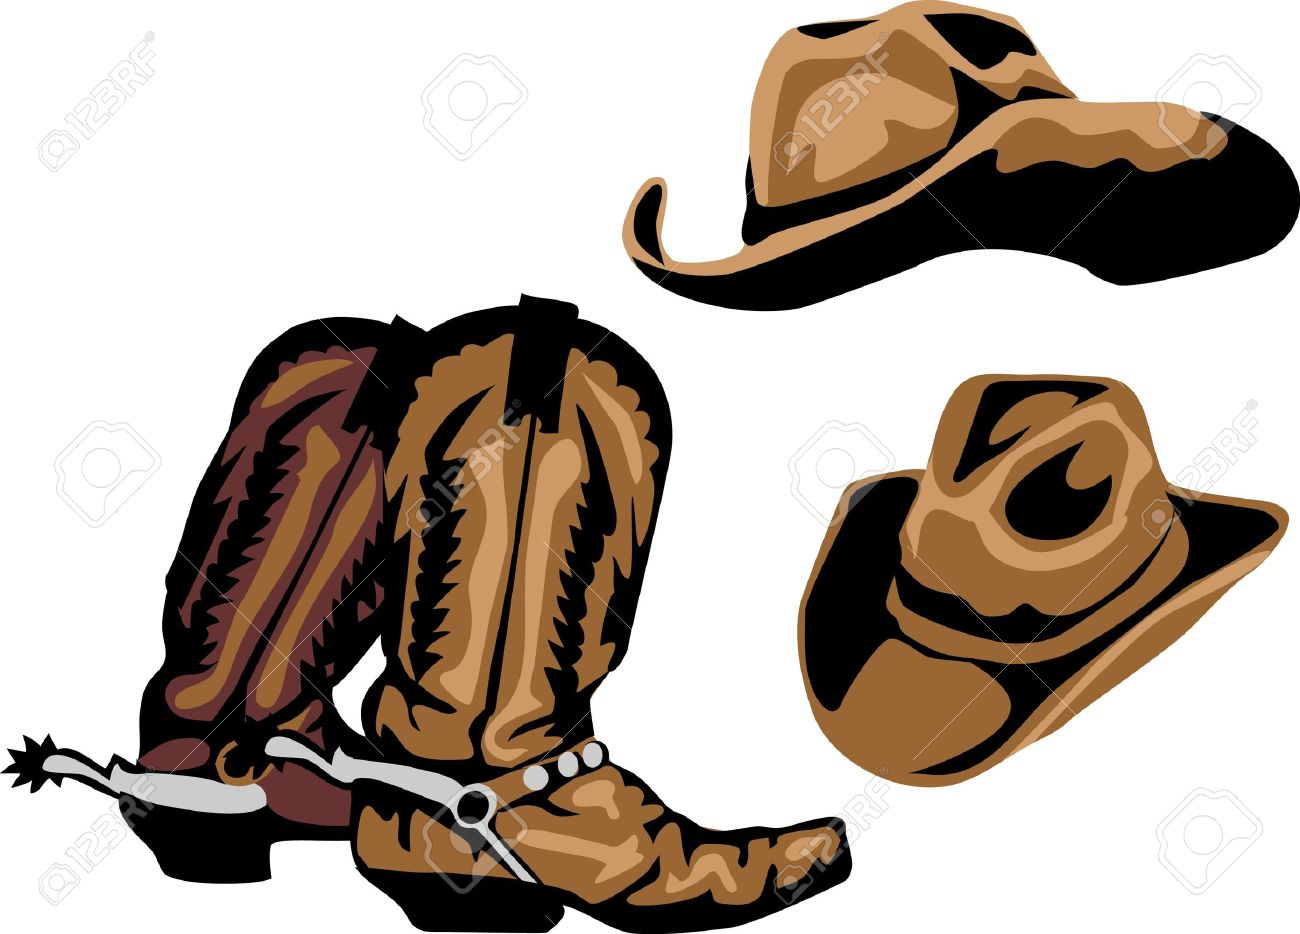 Cowboy Boots And Hats Royalty Free Cliparts, Vectors, And Stock ...